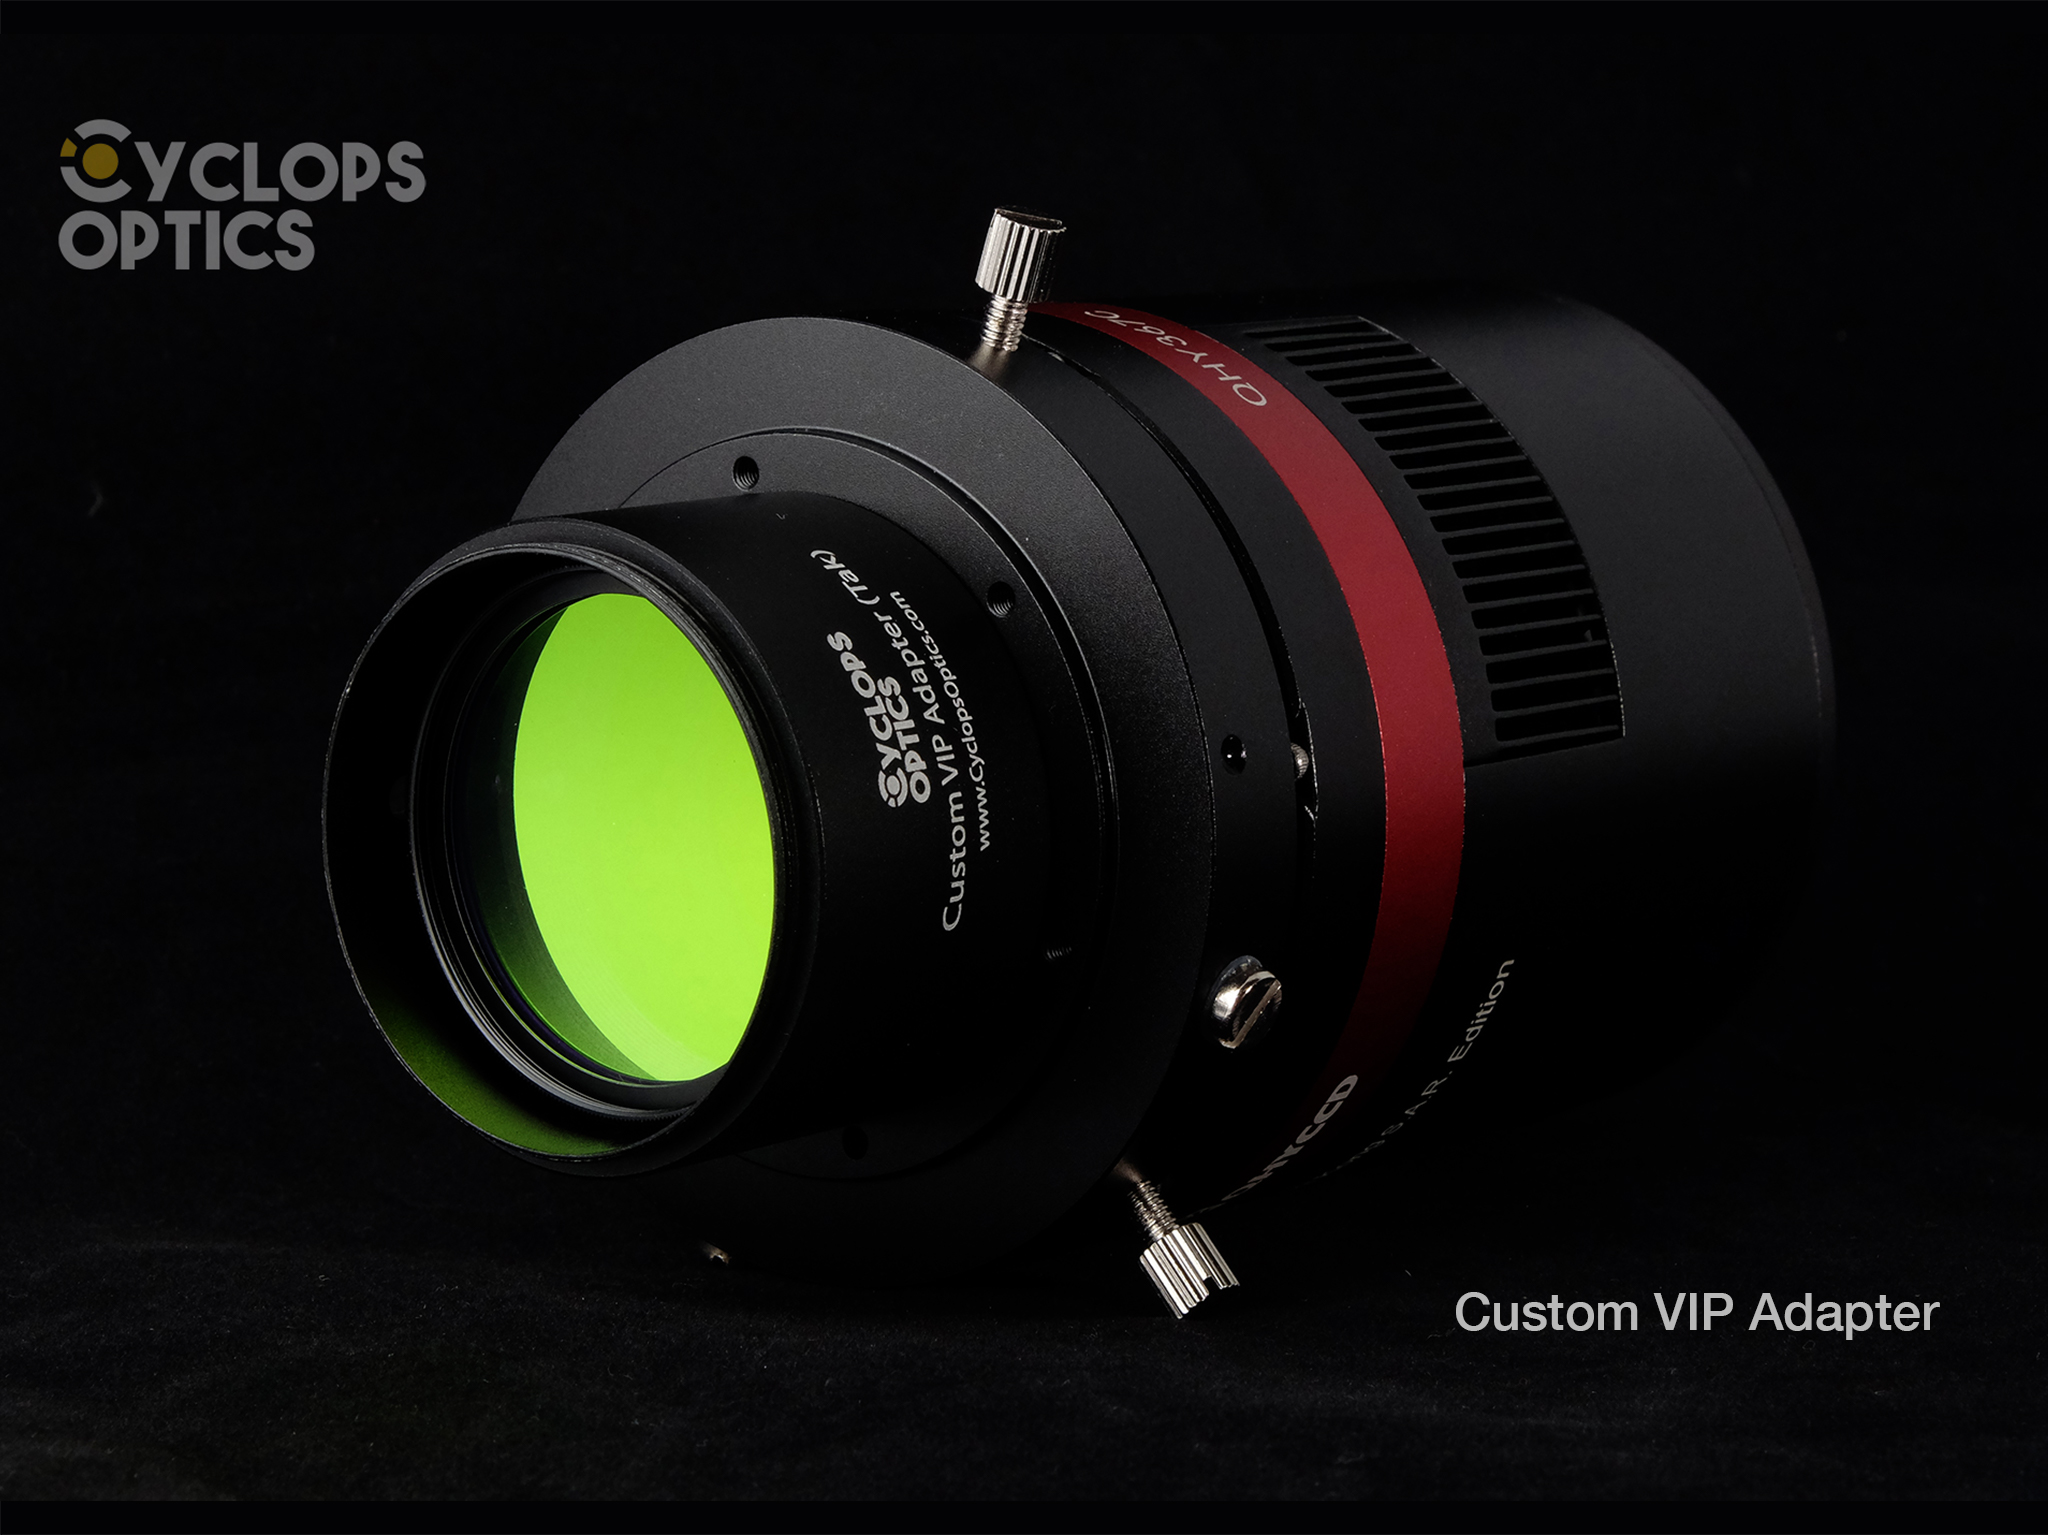 cyclops-optics-custom-vip-adapter-tak-002-2048px-cap.jpg